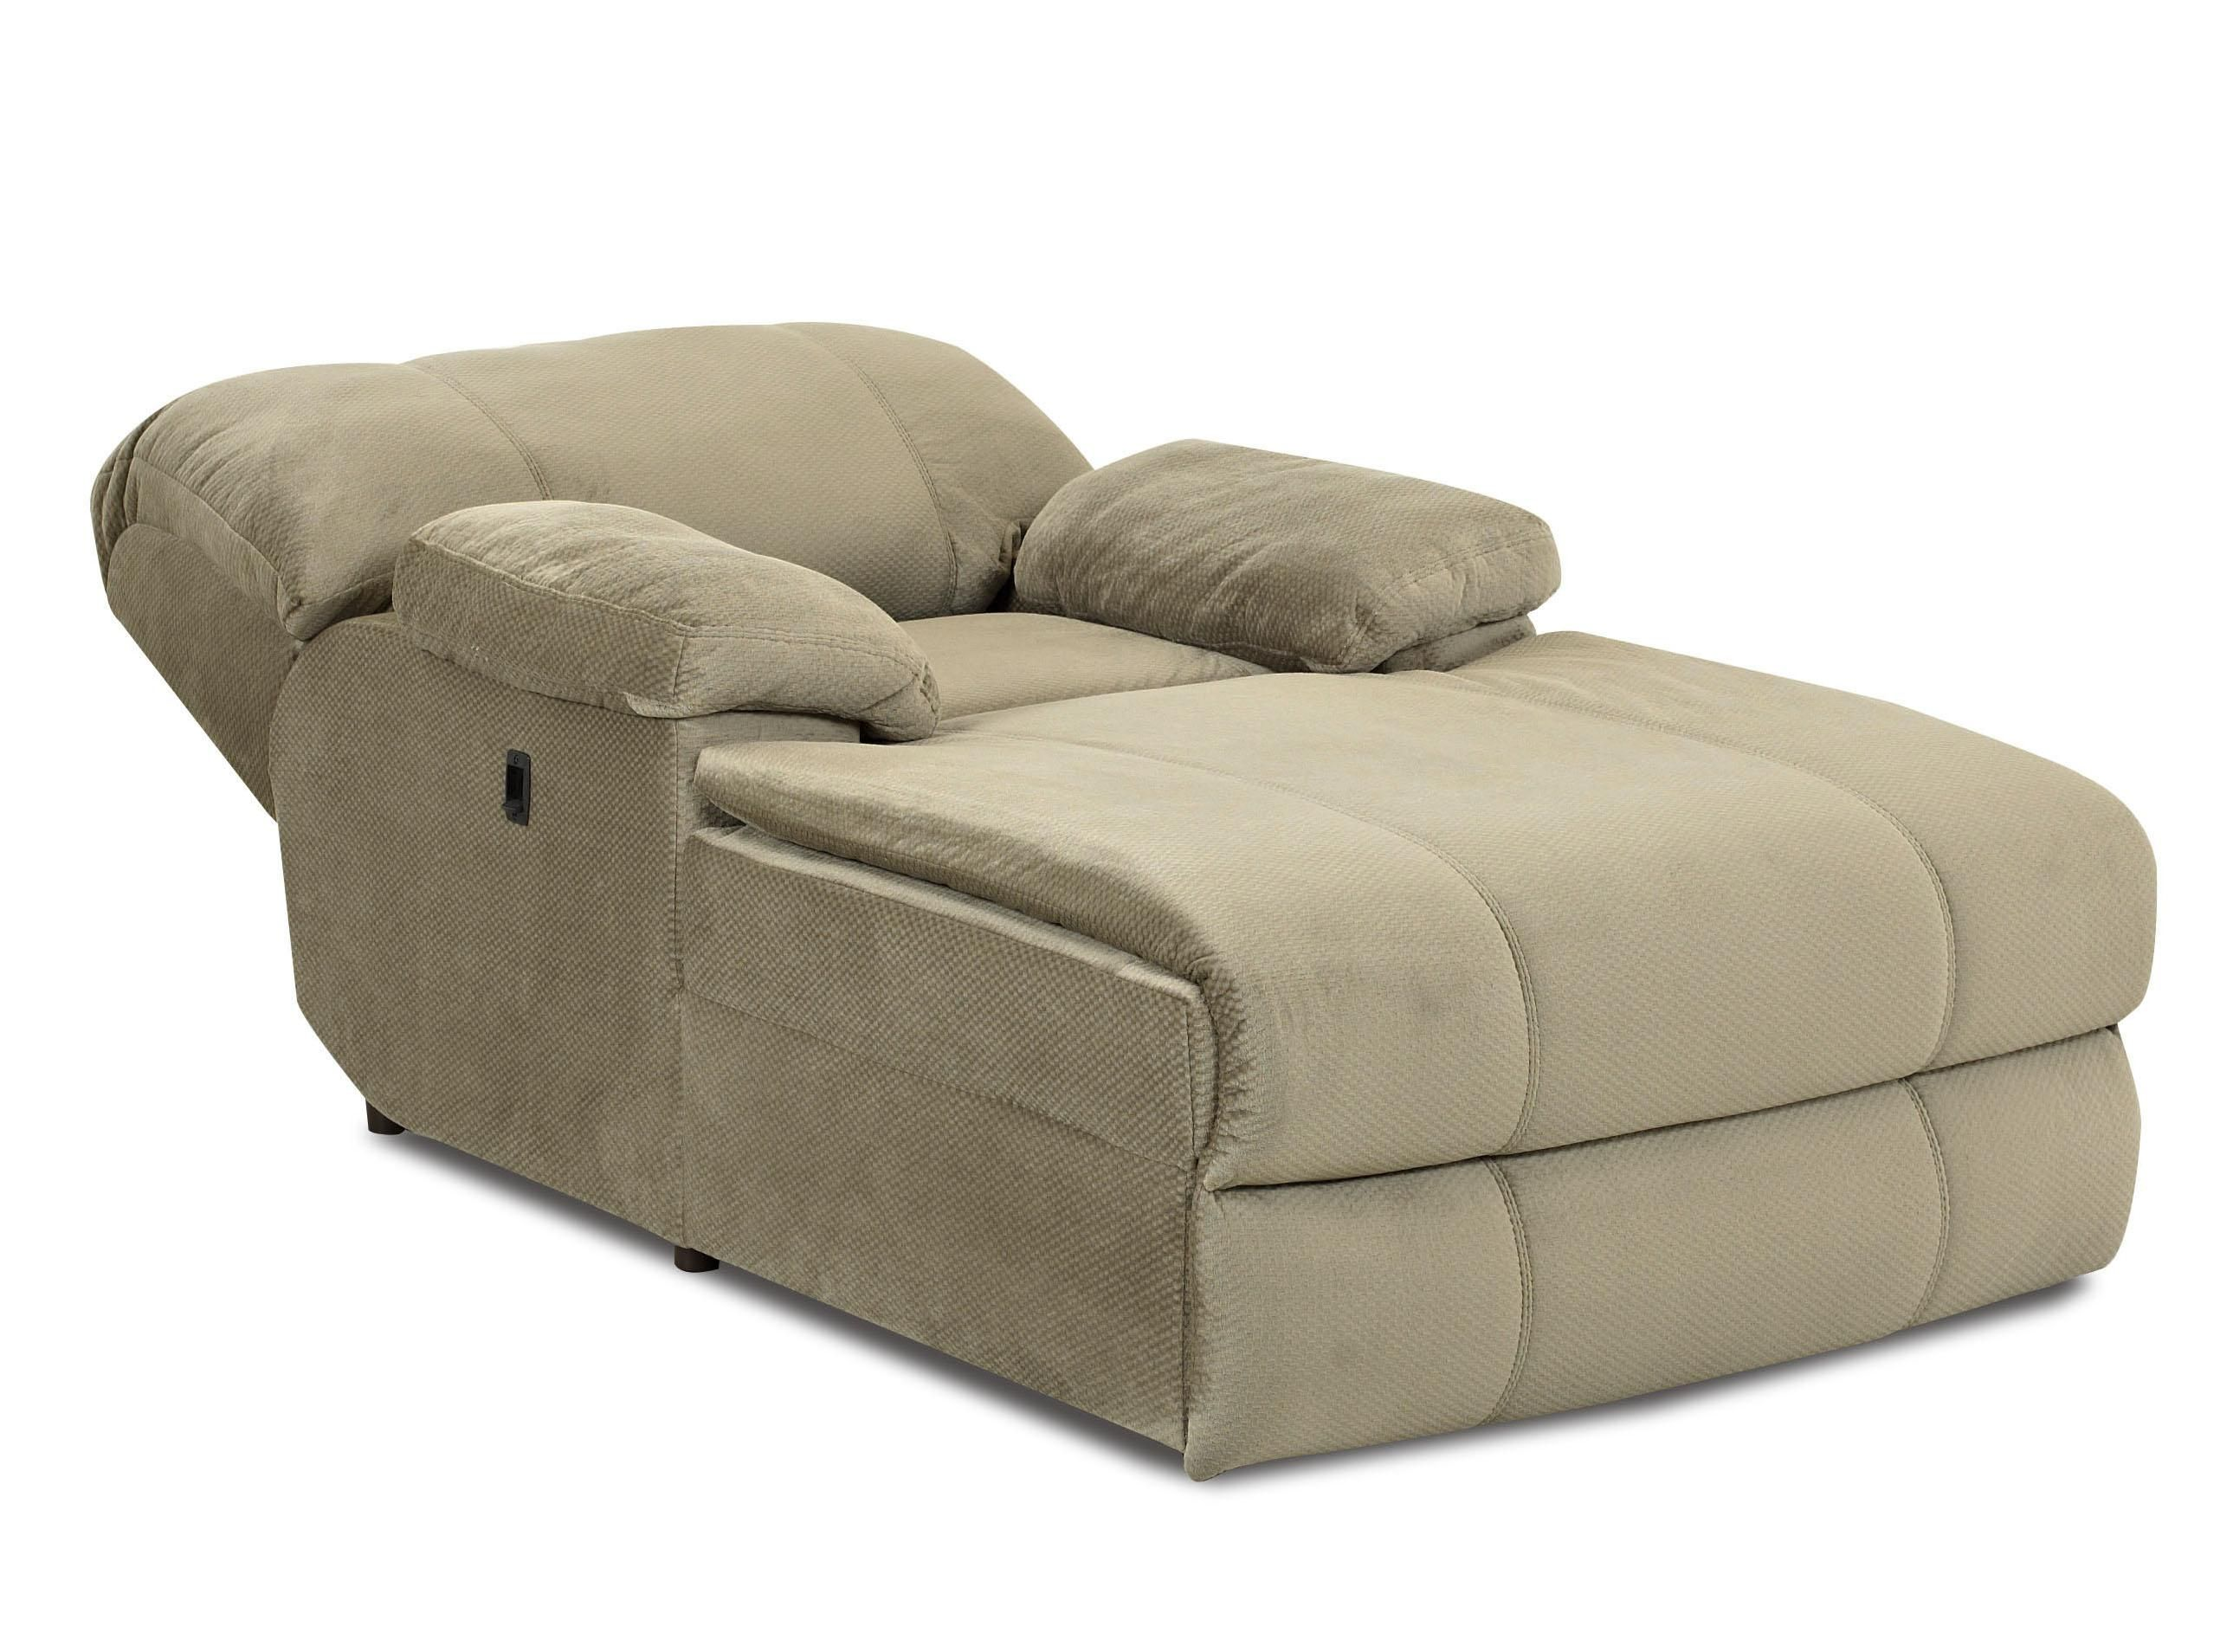 Double Wide Recliner Chair Indoor Oversized Chaise Lounge Kensington Reclining Chaise